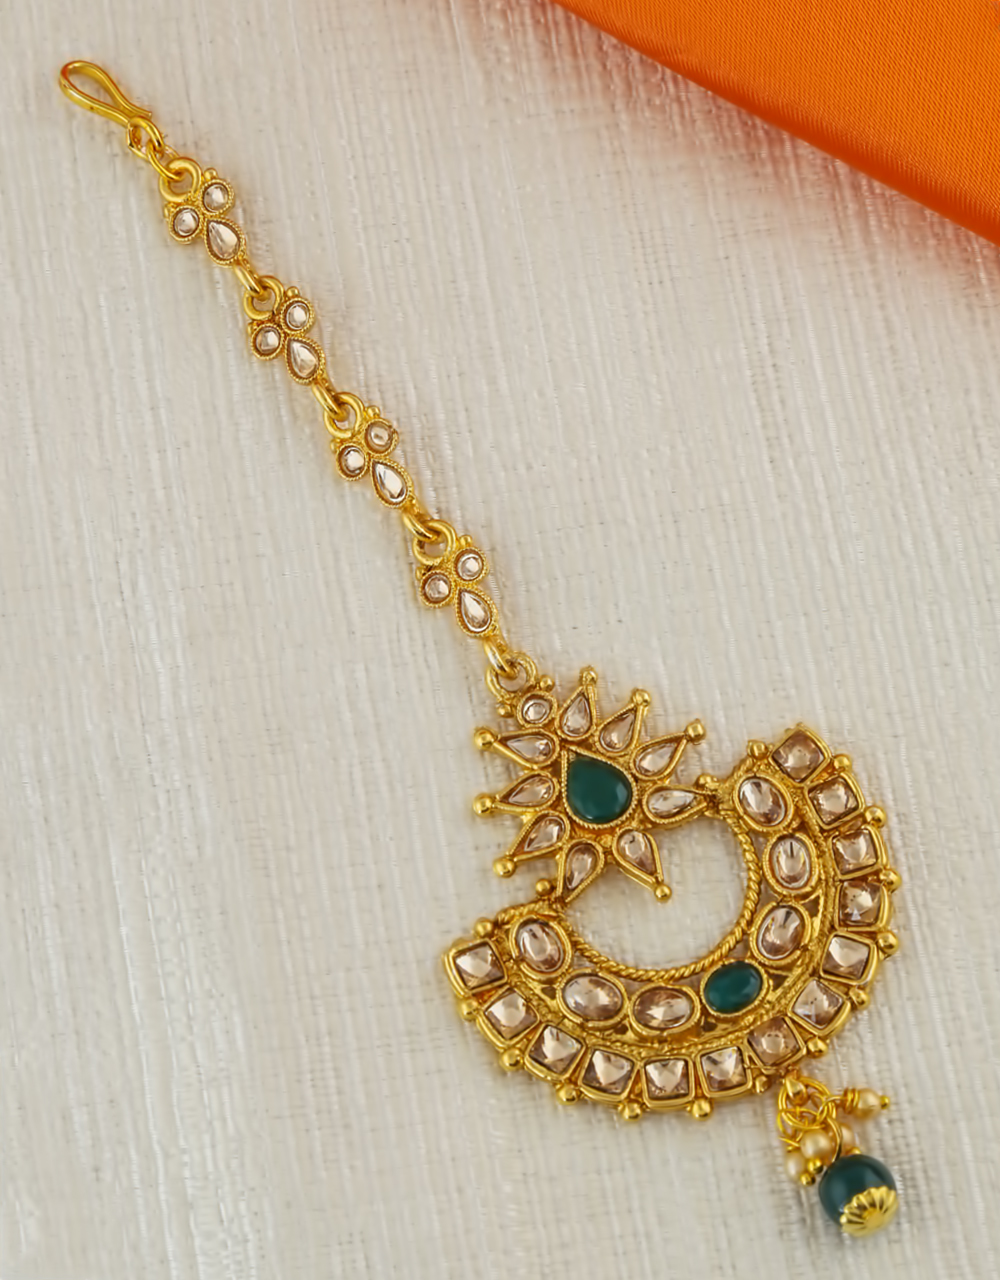 Green Colour Gold Finish Floral Mang Tikka Accessories